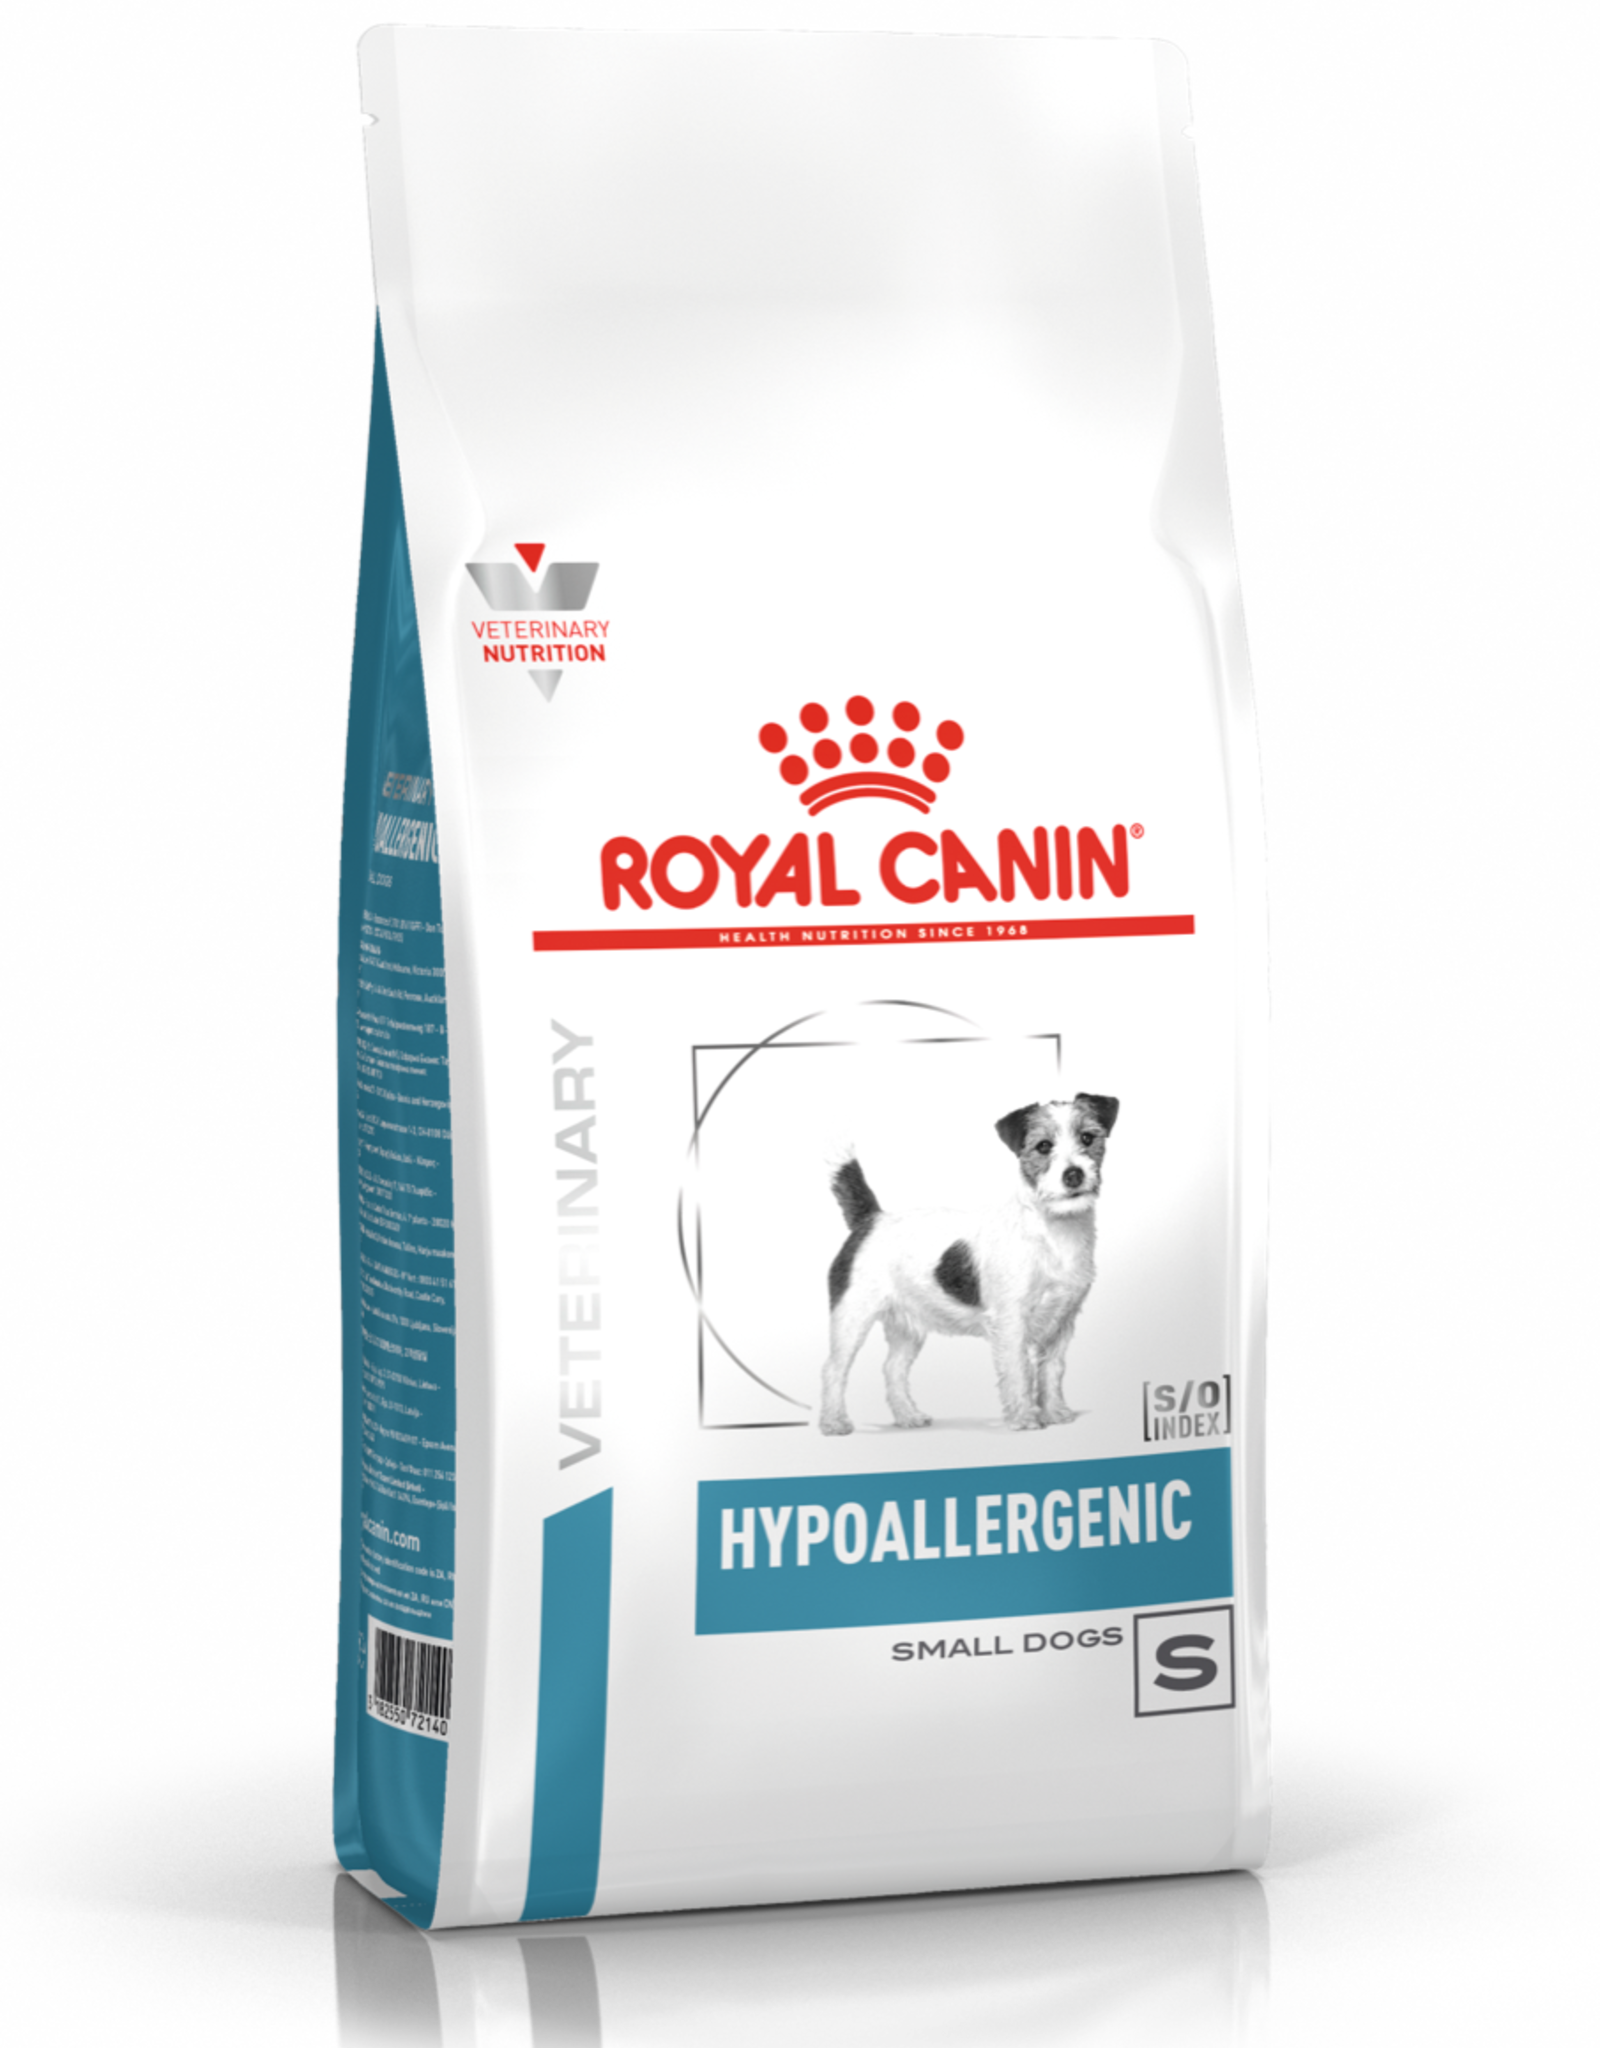 Royal Canin Royal Canin Hypoallergenic Small Chien 3,5kg